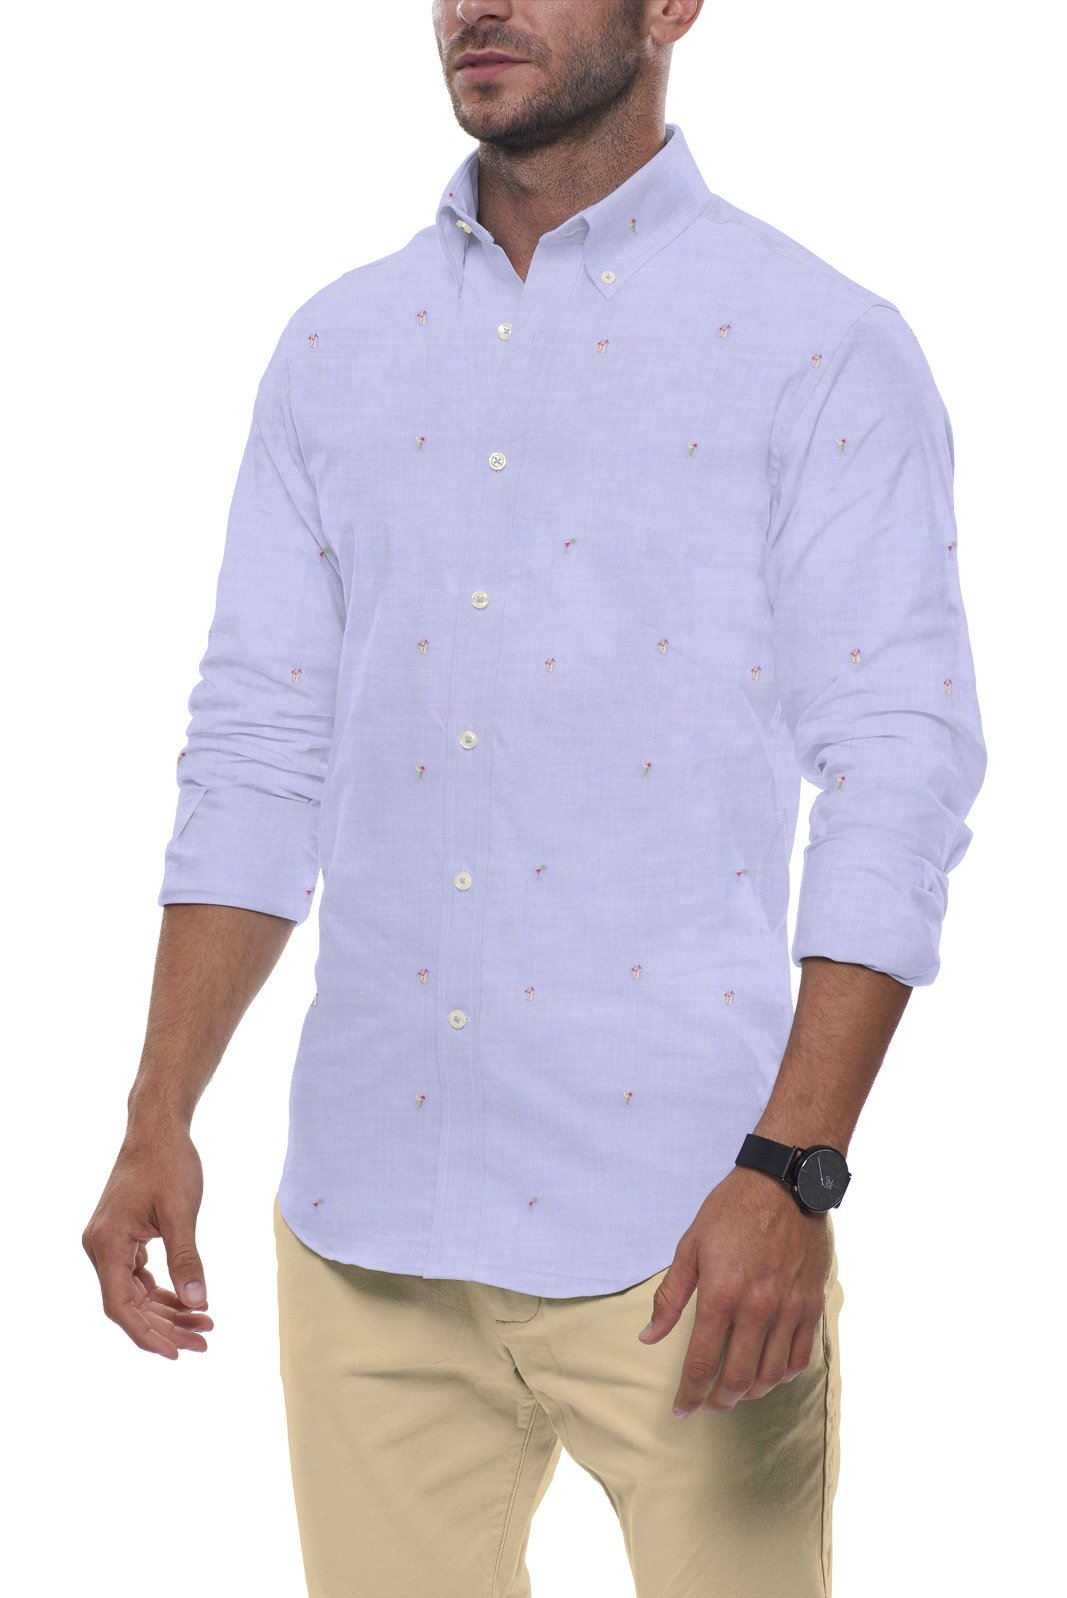 Beach Days Fil Coupe in Light Blue: Semi-Spread Collar, Long Sleeve